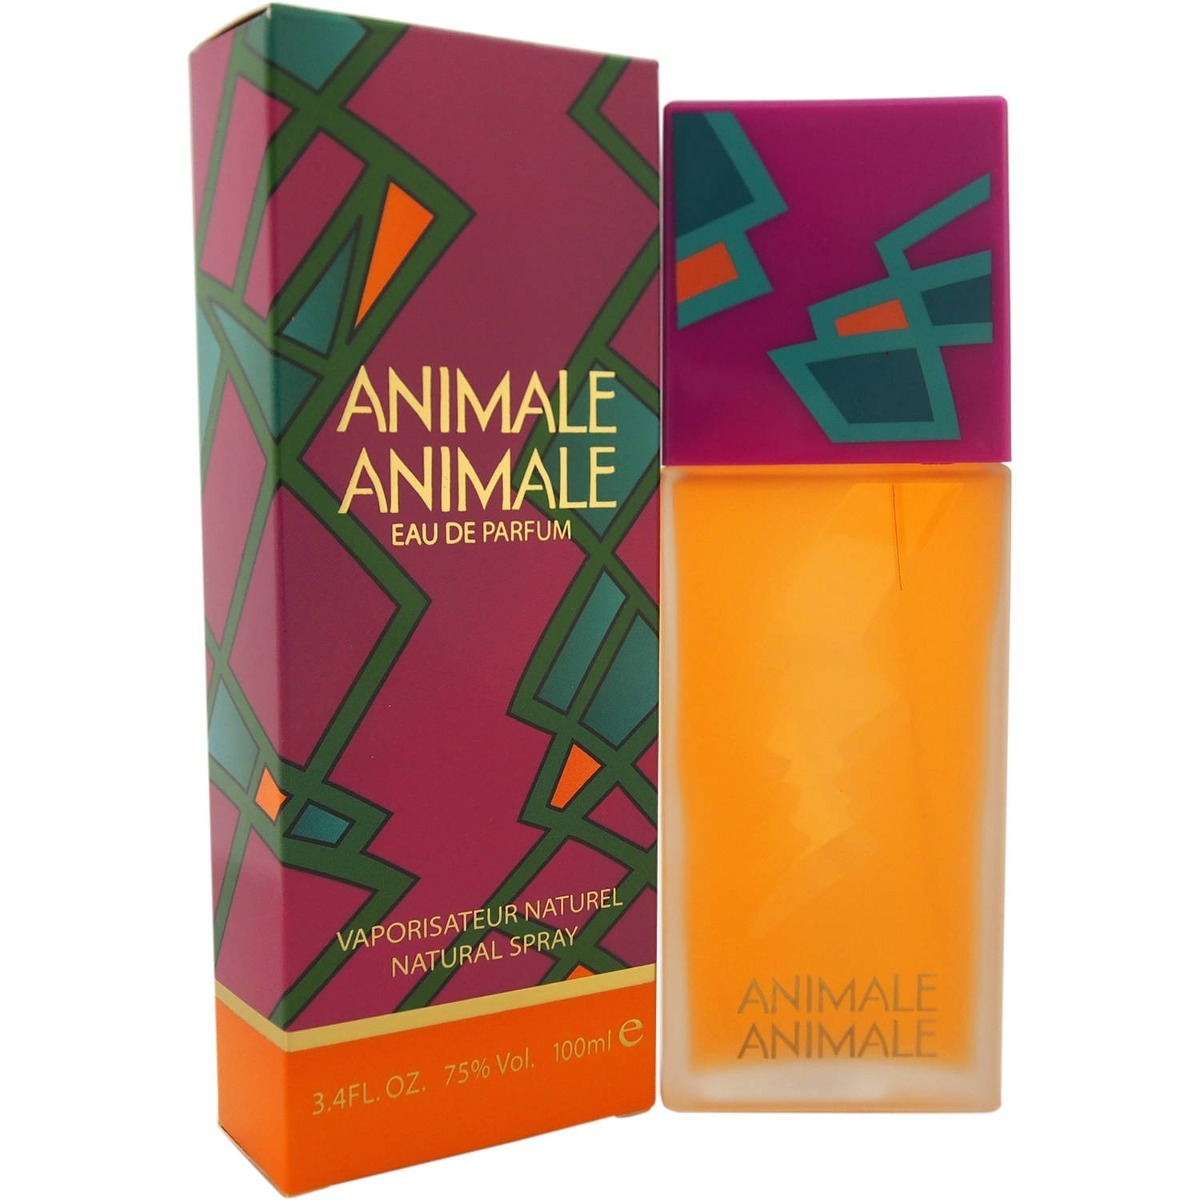 Edp 3 4 Oz By Nuperfumes On Opensky: ANIMALE Animale-Animale-EDP For Women 3.4 Oz.